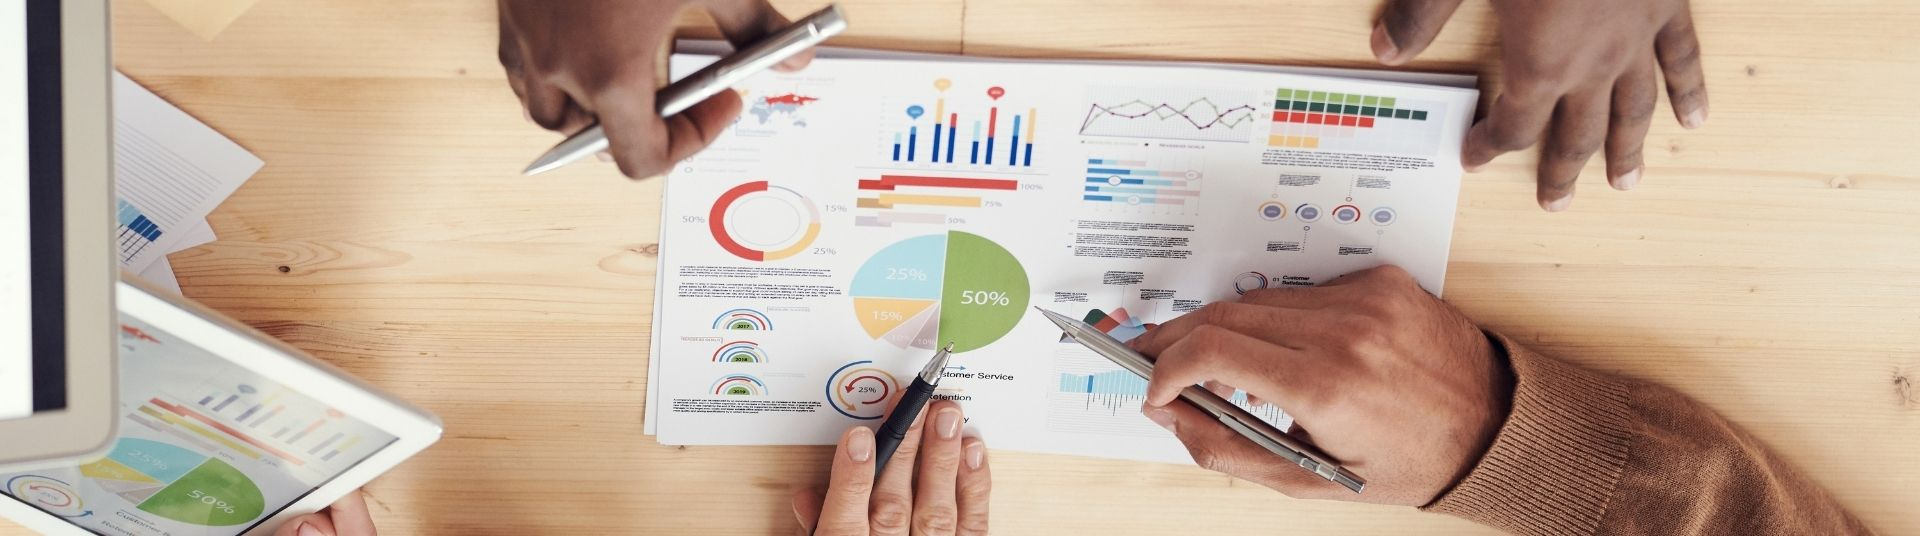 Import Export Business Plan   How to do it efficiently   Royal